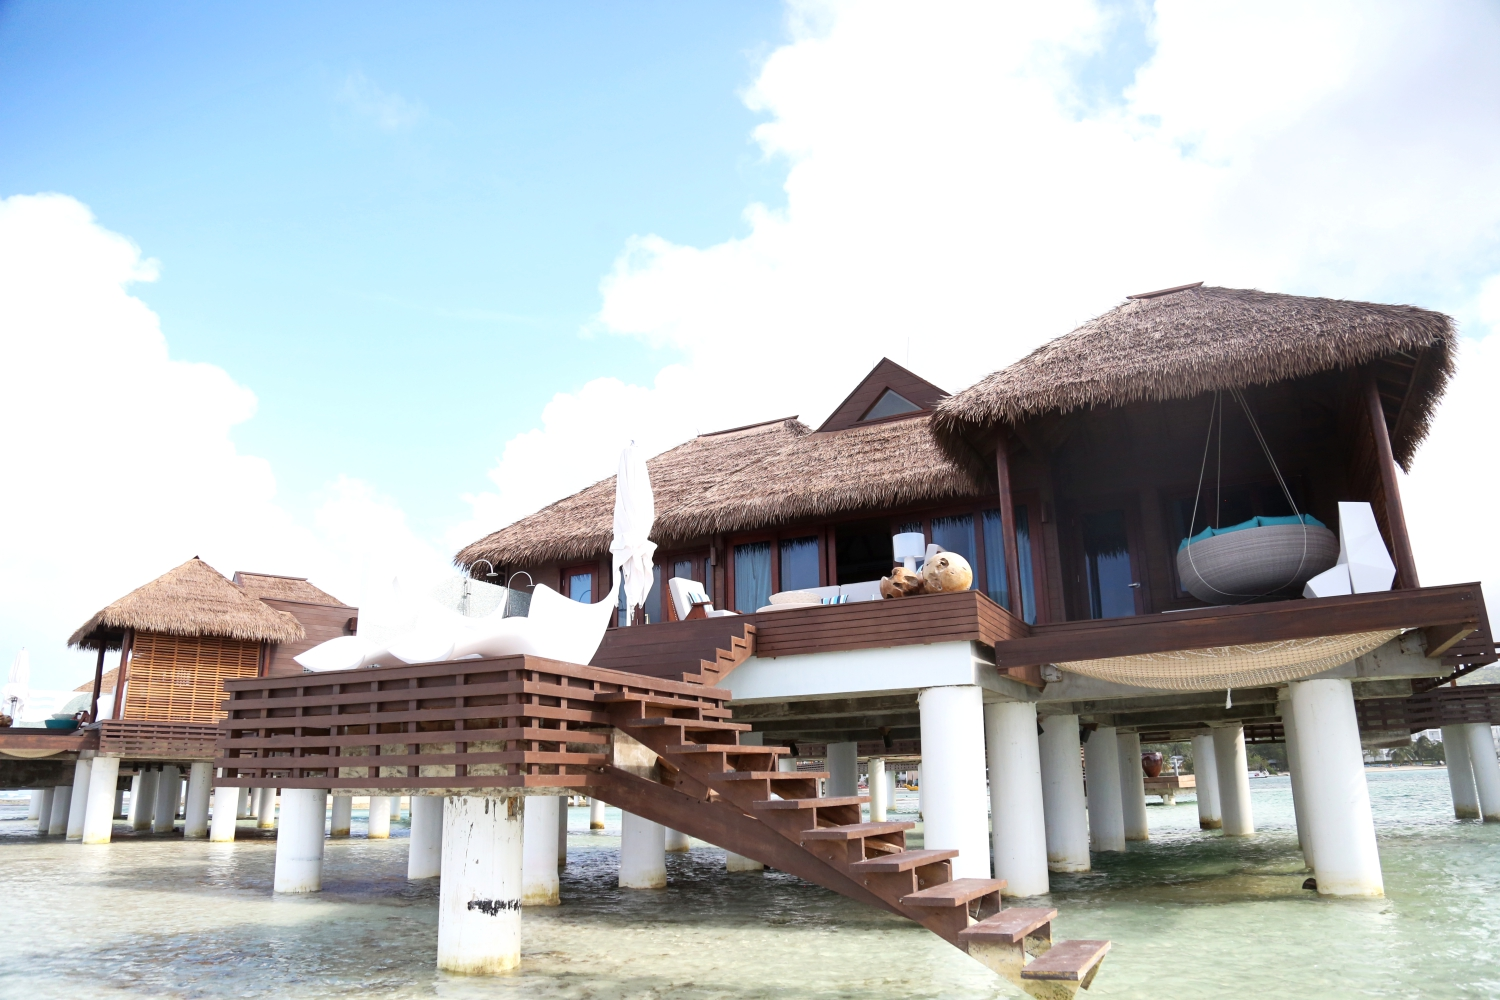 sandals-overthewatervilla